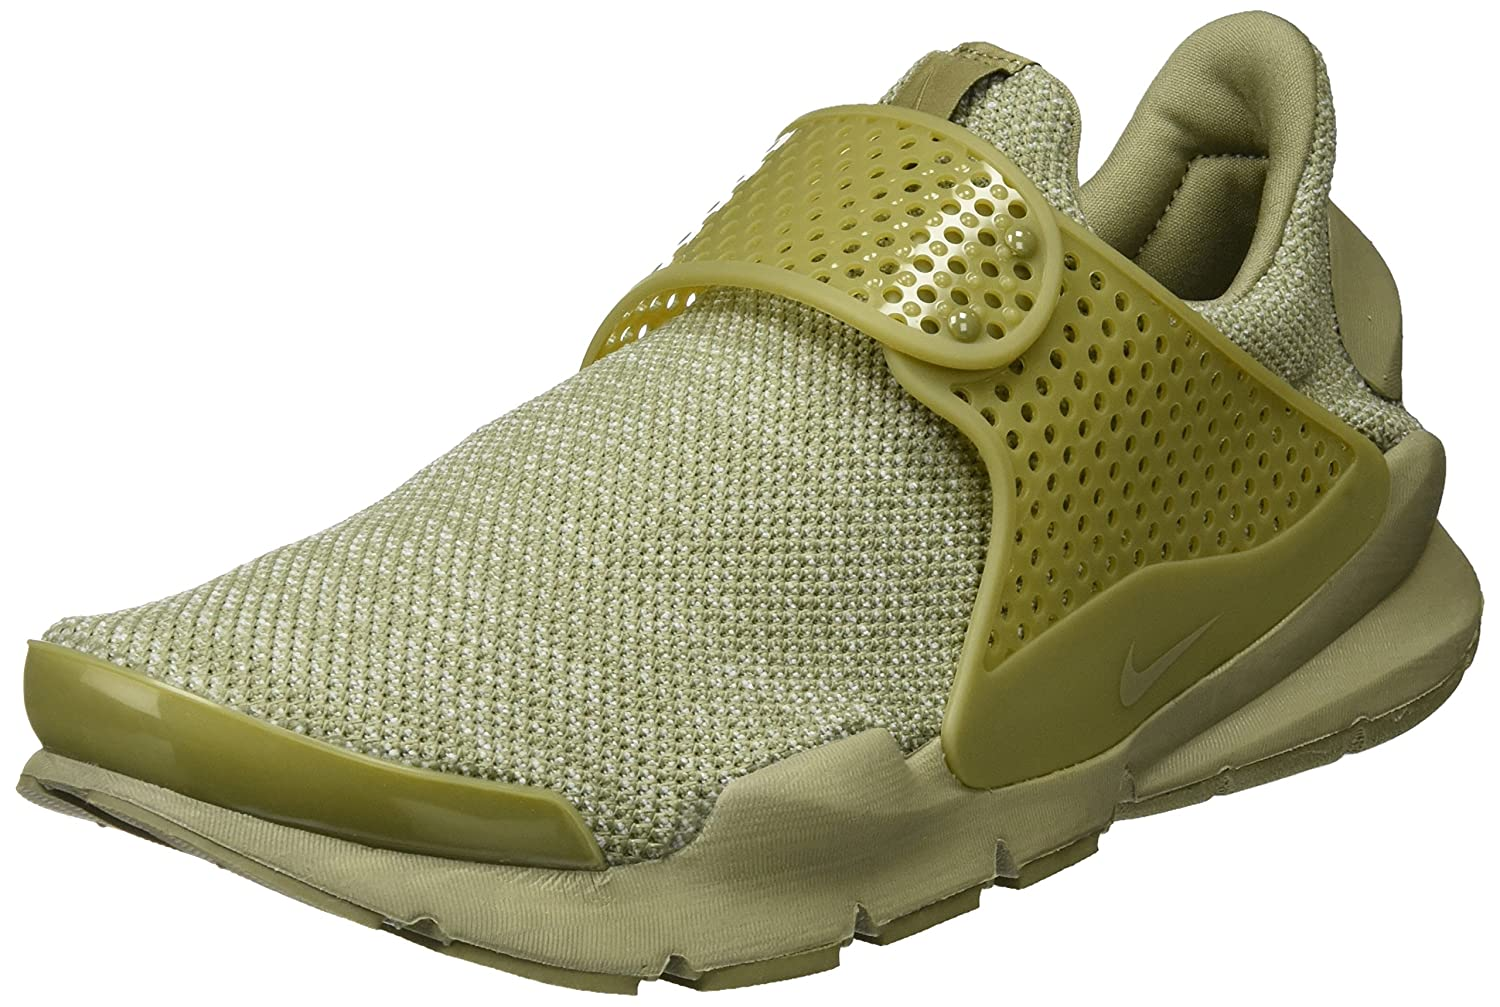 NIKE Men's Sock Dart BR Running Shoe B06Y41XDBF 8 D(M) US|Trooper/Trooper/Trooper